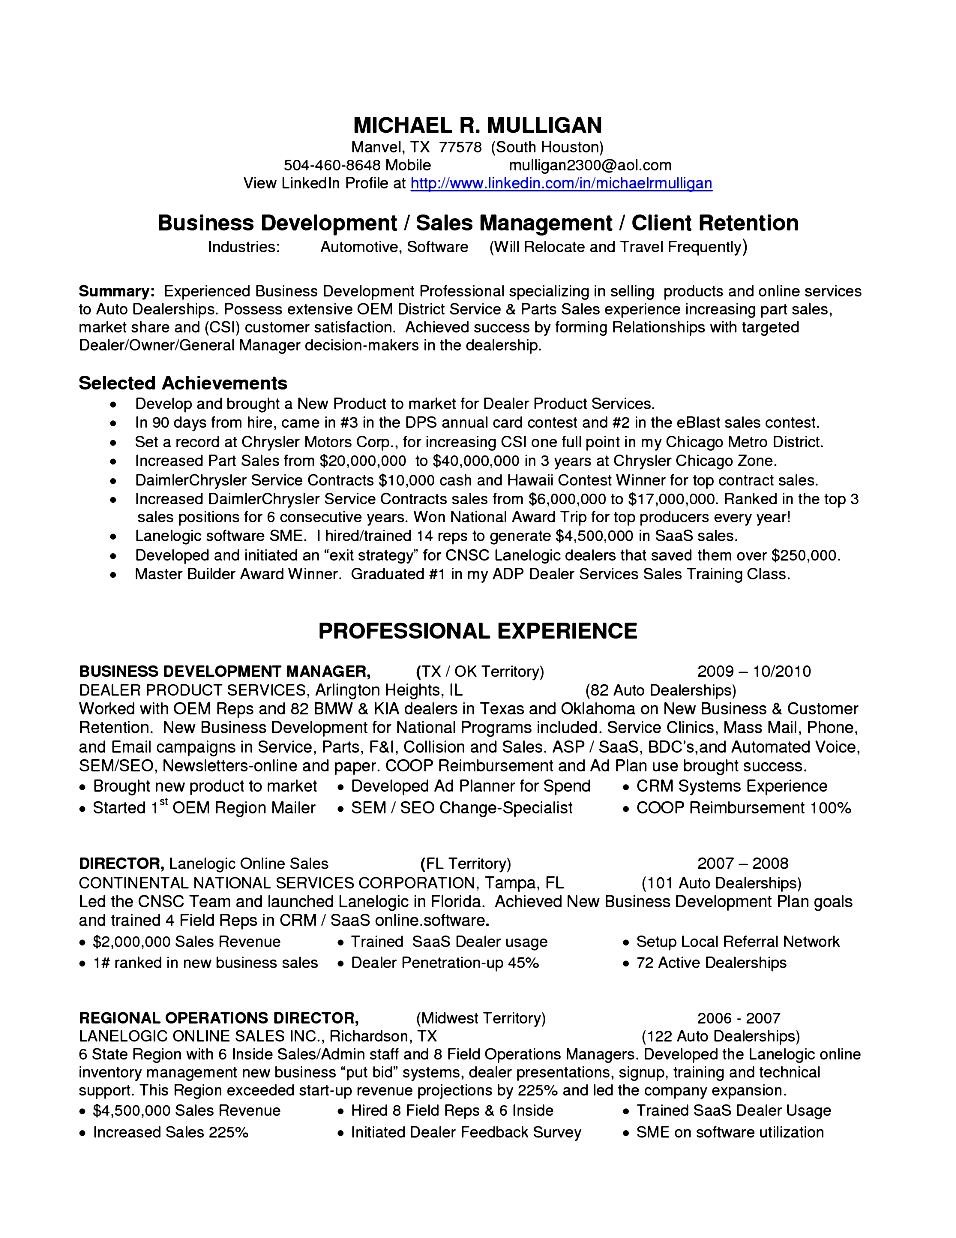 Business Development Executive Resume Pdf Free Samples